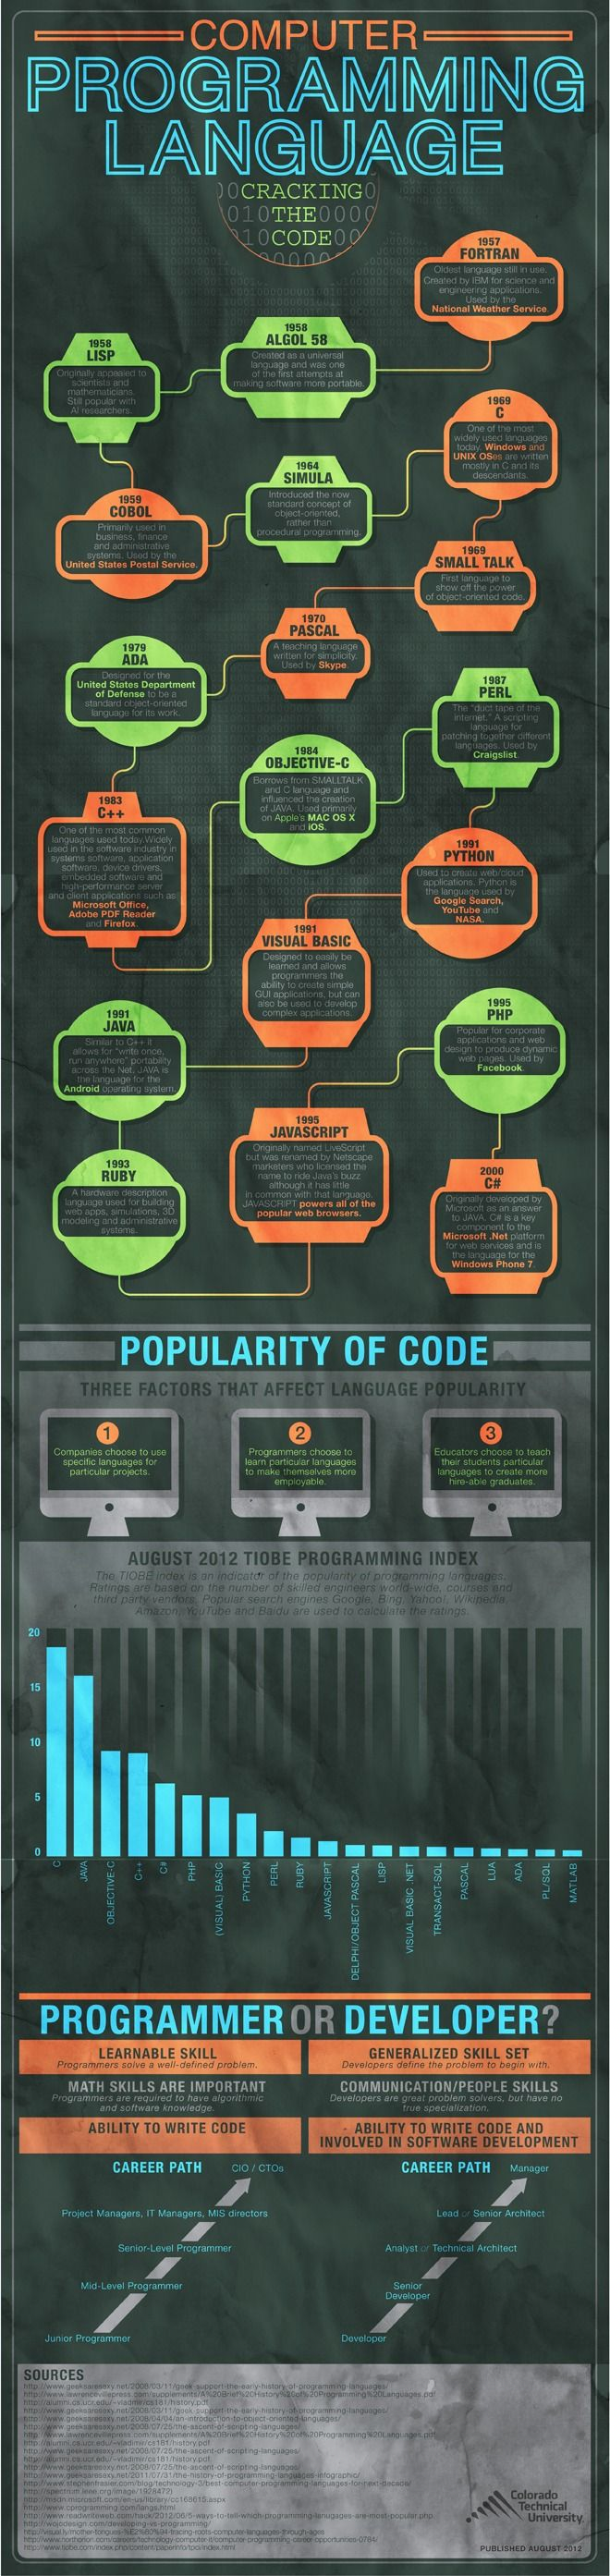 Computer Programming Languages  Infographic repinned by www.BlickeDeeler.de